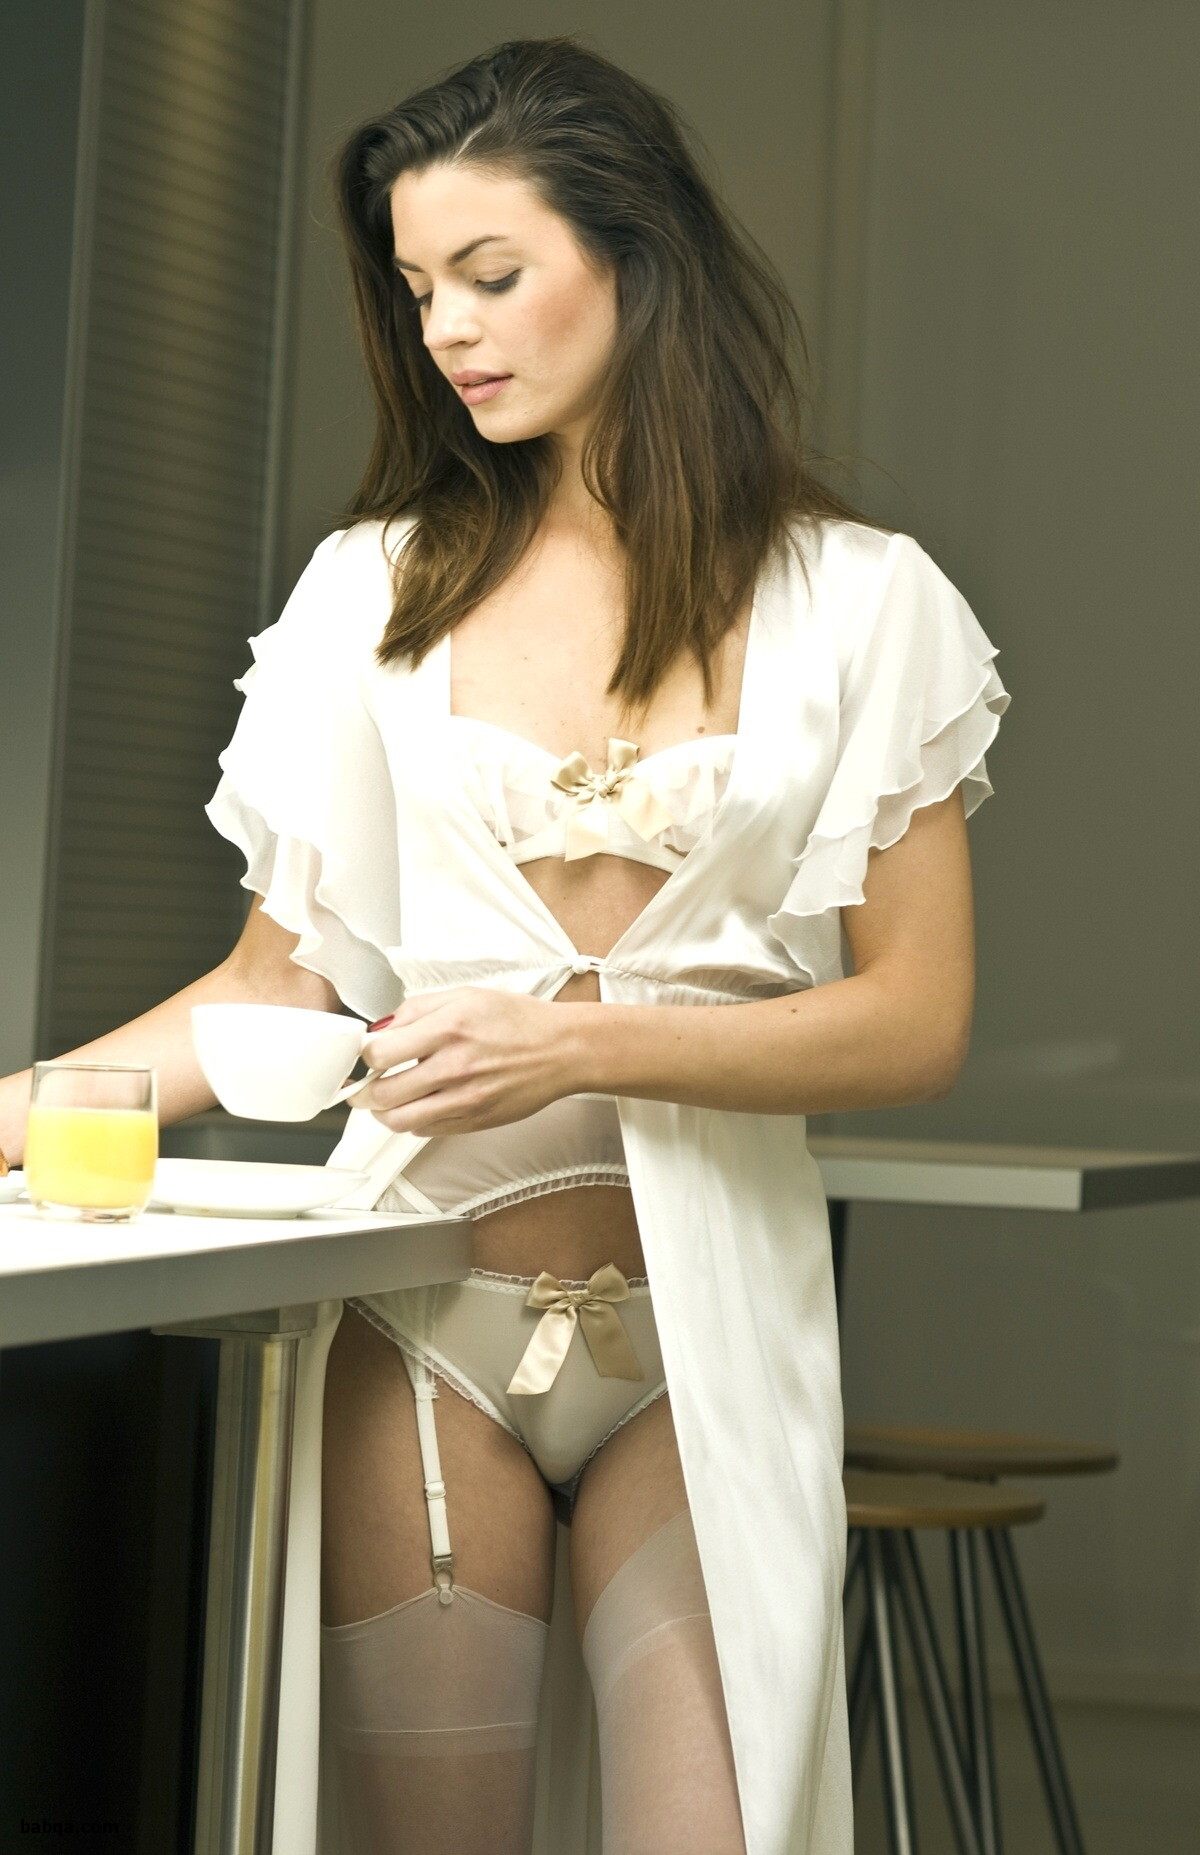 cheap stocking fillers for girls and milf in stockings movies